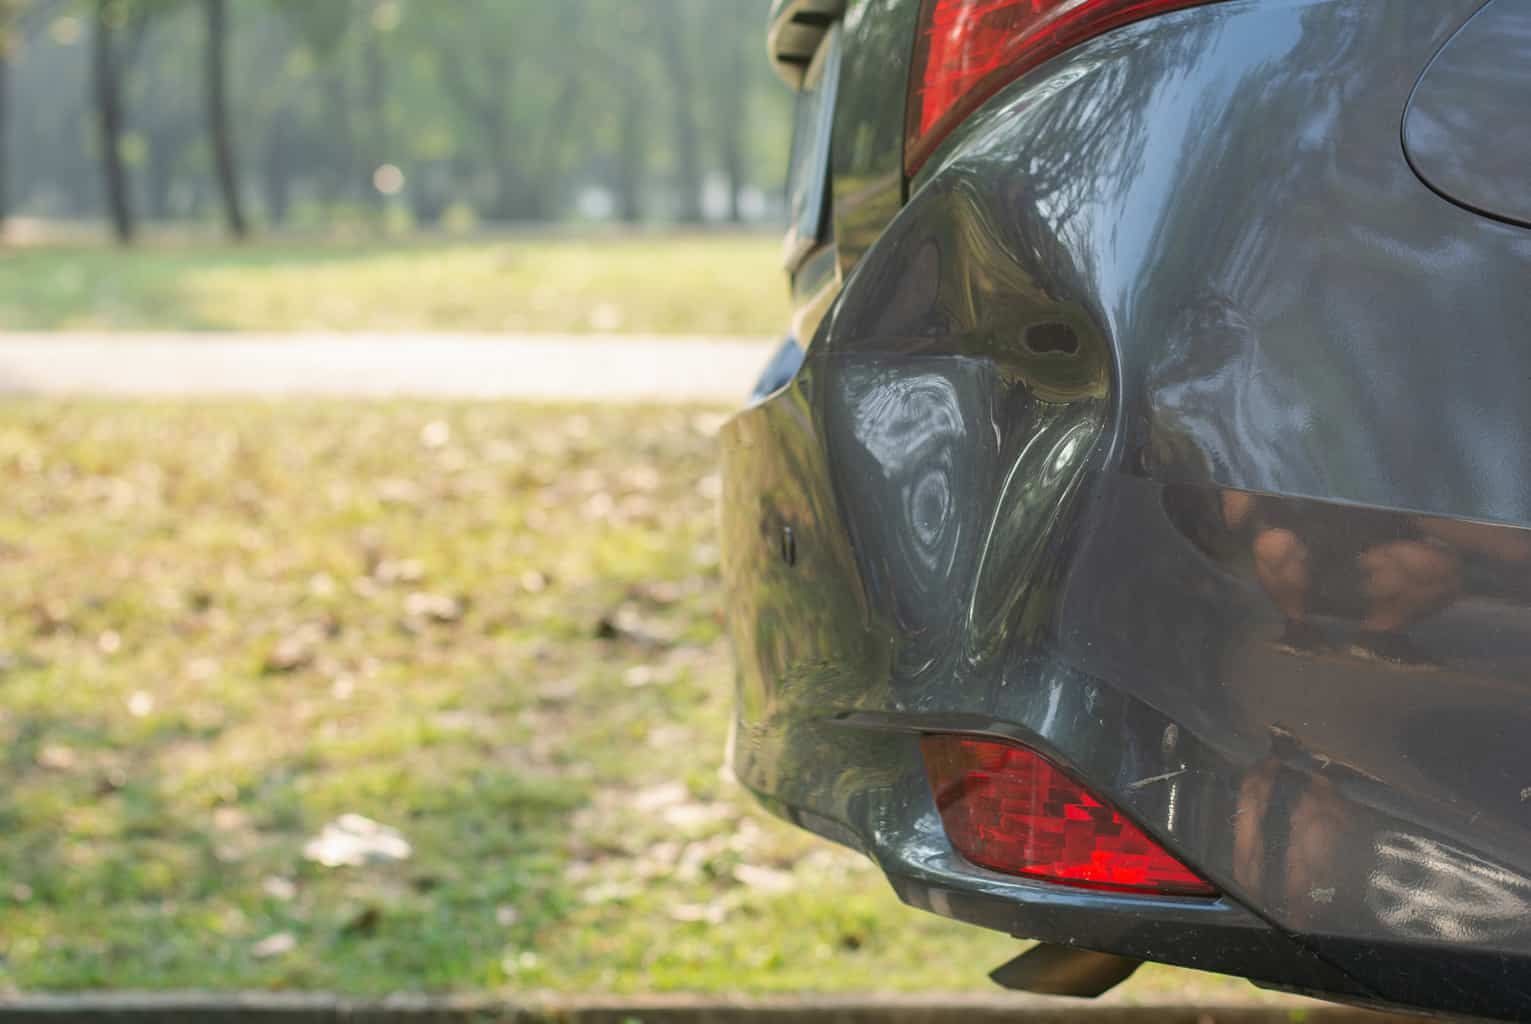 Car a broken rear bumper, The car stopped on road which ...